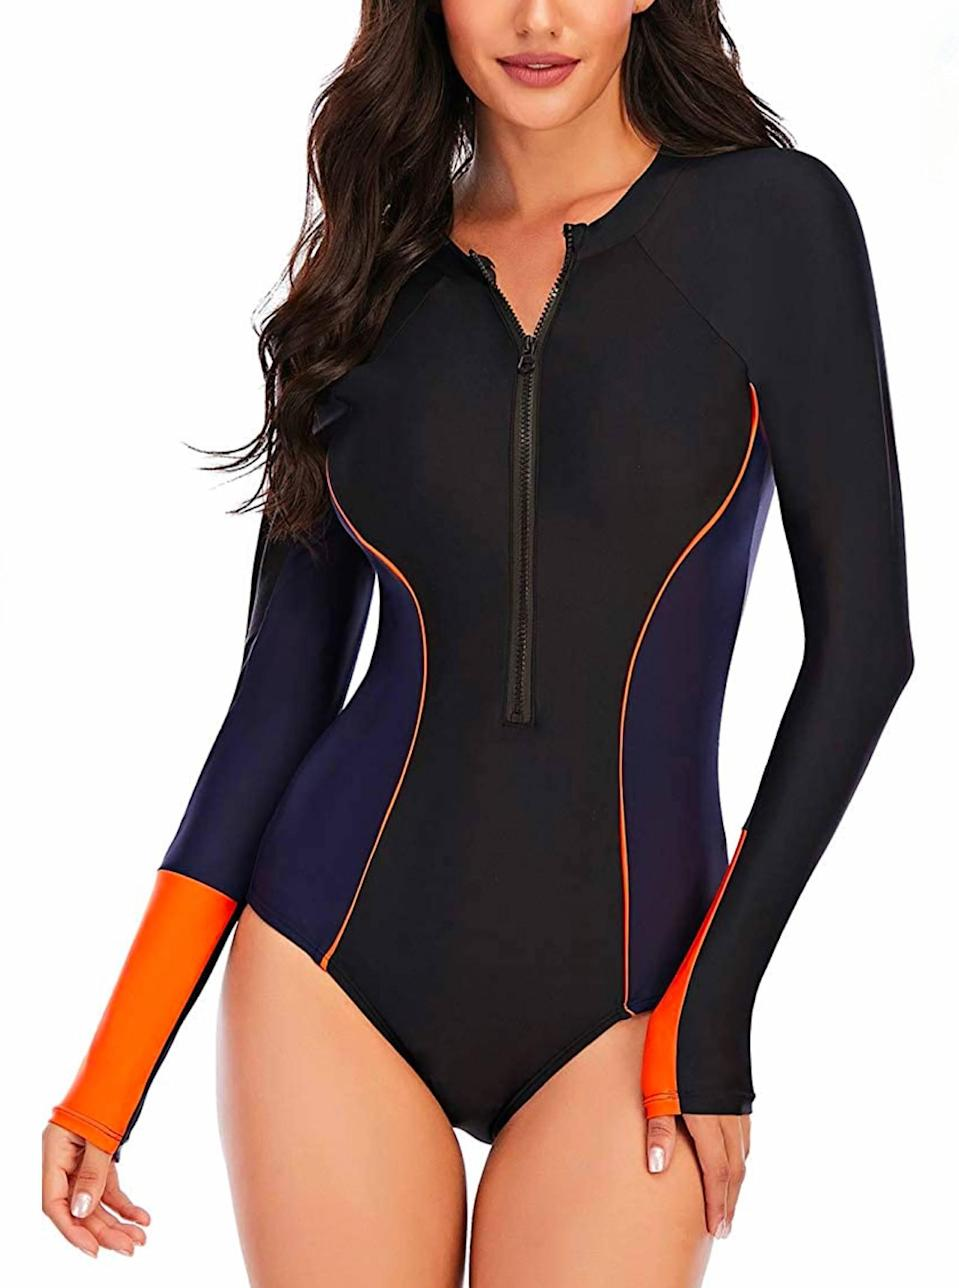 """The pop of orange on this otherwise simple sporty suit is all the intrigue we need. The bottoms are pretty full coverage so you'll be comfortable for whatever summer activity you have lined up. $29, Amazon. <a href=""""https://www.amazon.com/TracyGirl-Protection-Printed-Swimsuit-Swimwear/dp/B08QVZJ4N5/ref="""" rel=""""nofollow noopener"""" target=""""_blank"""" data-ylk=""""slk:Get it now!"""" class=""""link rapid-noclick-resp"""">Get it now!</a>"""